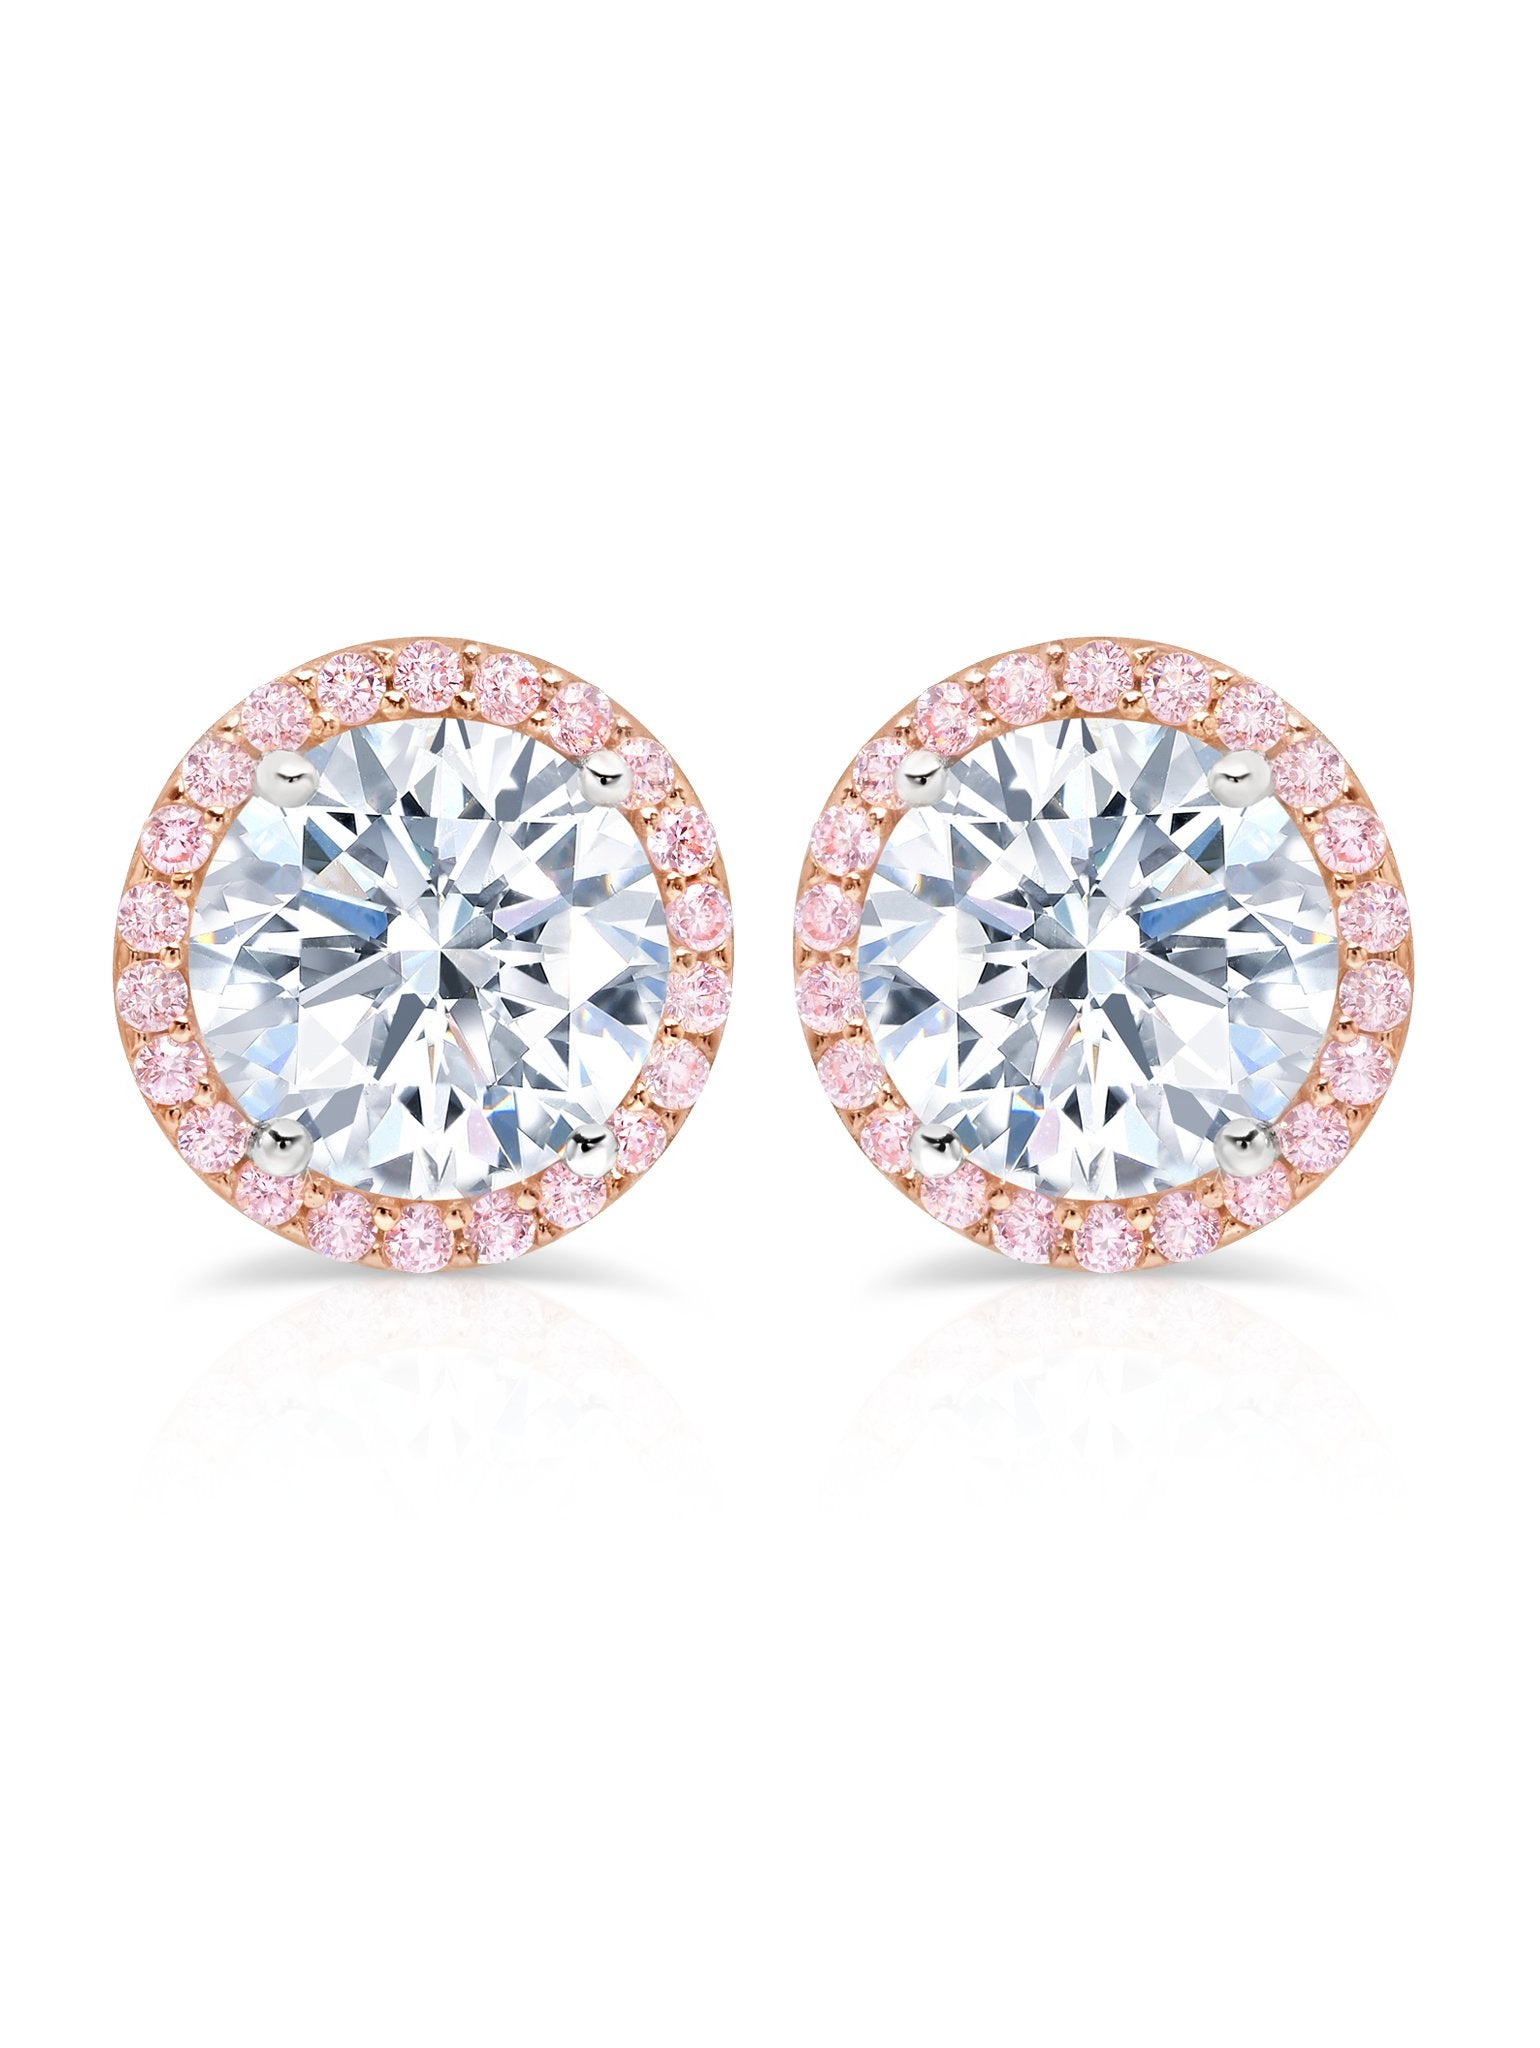 luisa product verling solitaire with studs stud earrings diamond bevel removable halo diame